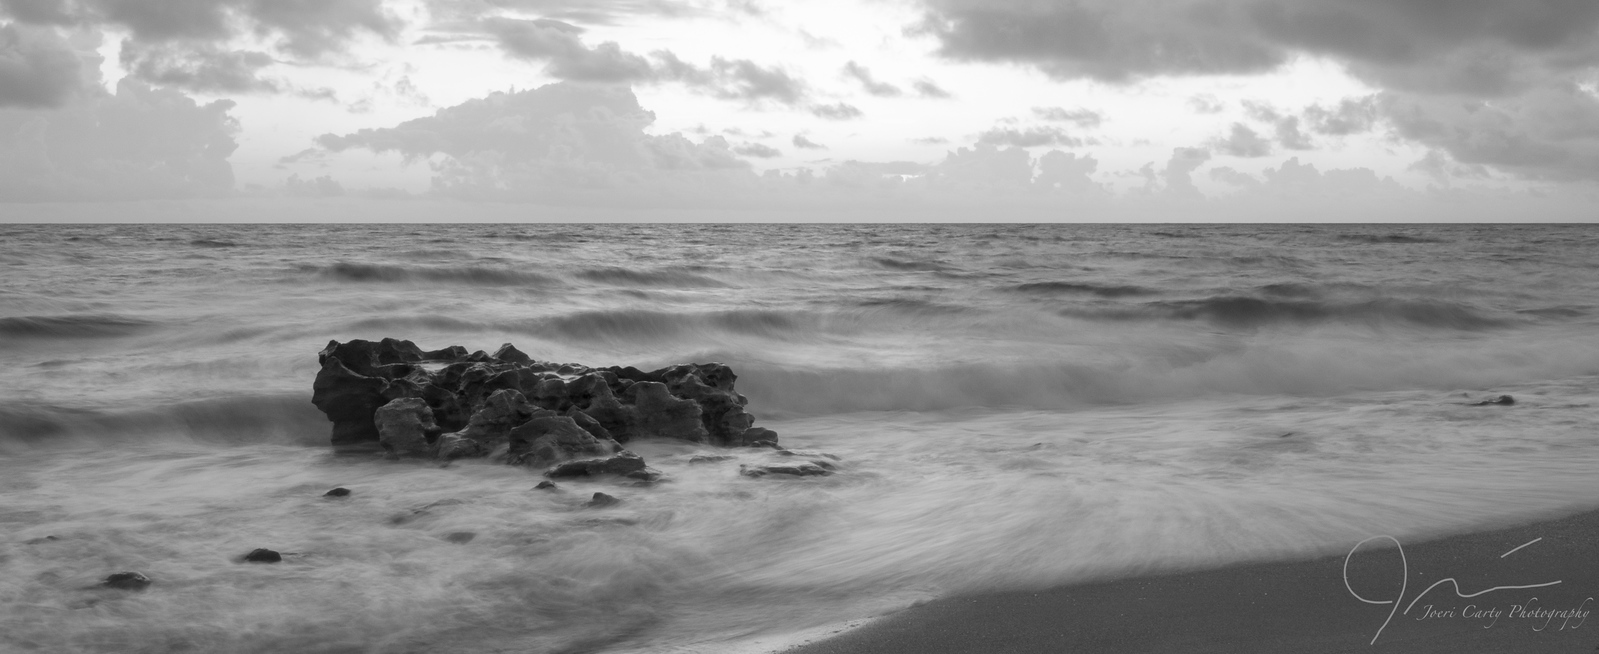 Coral Cay Waves